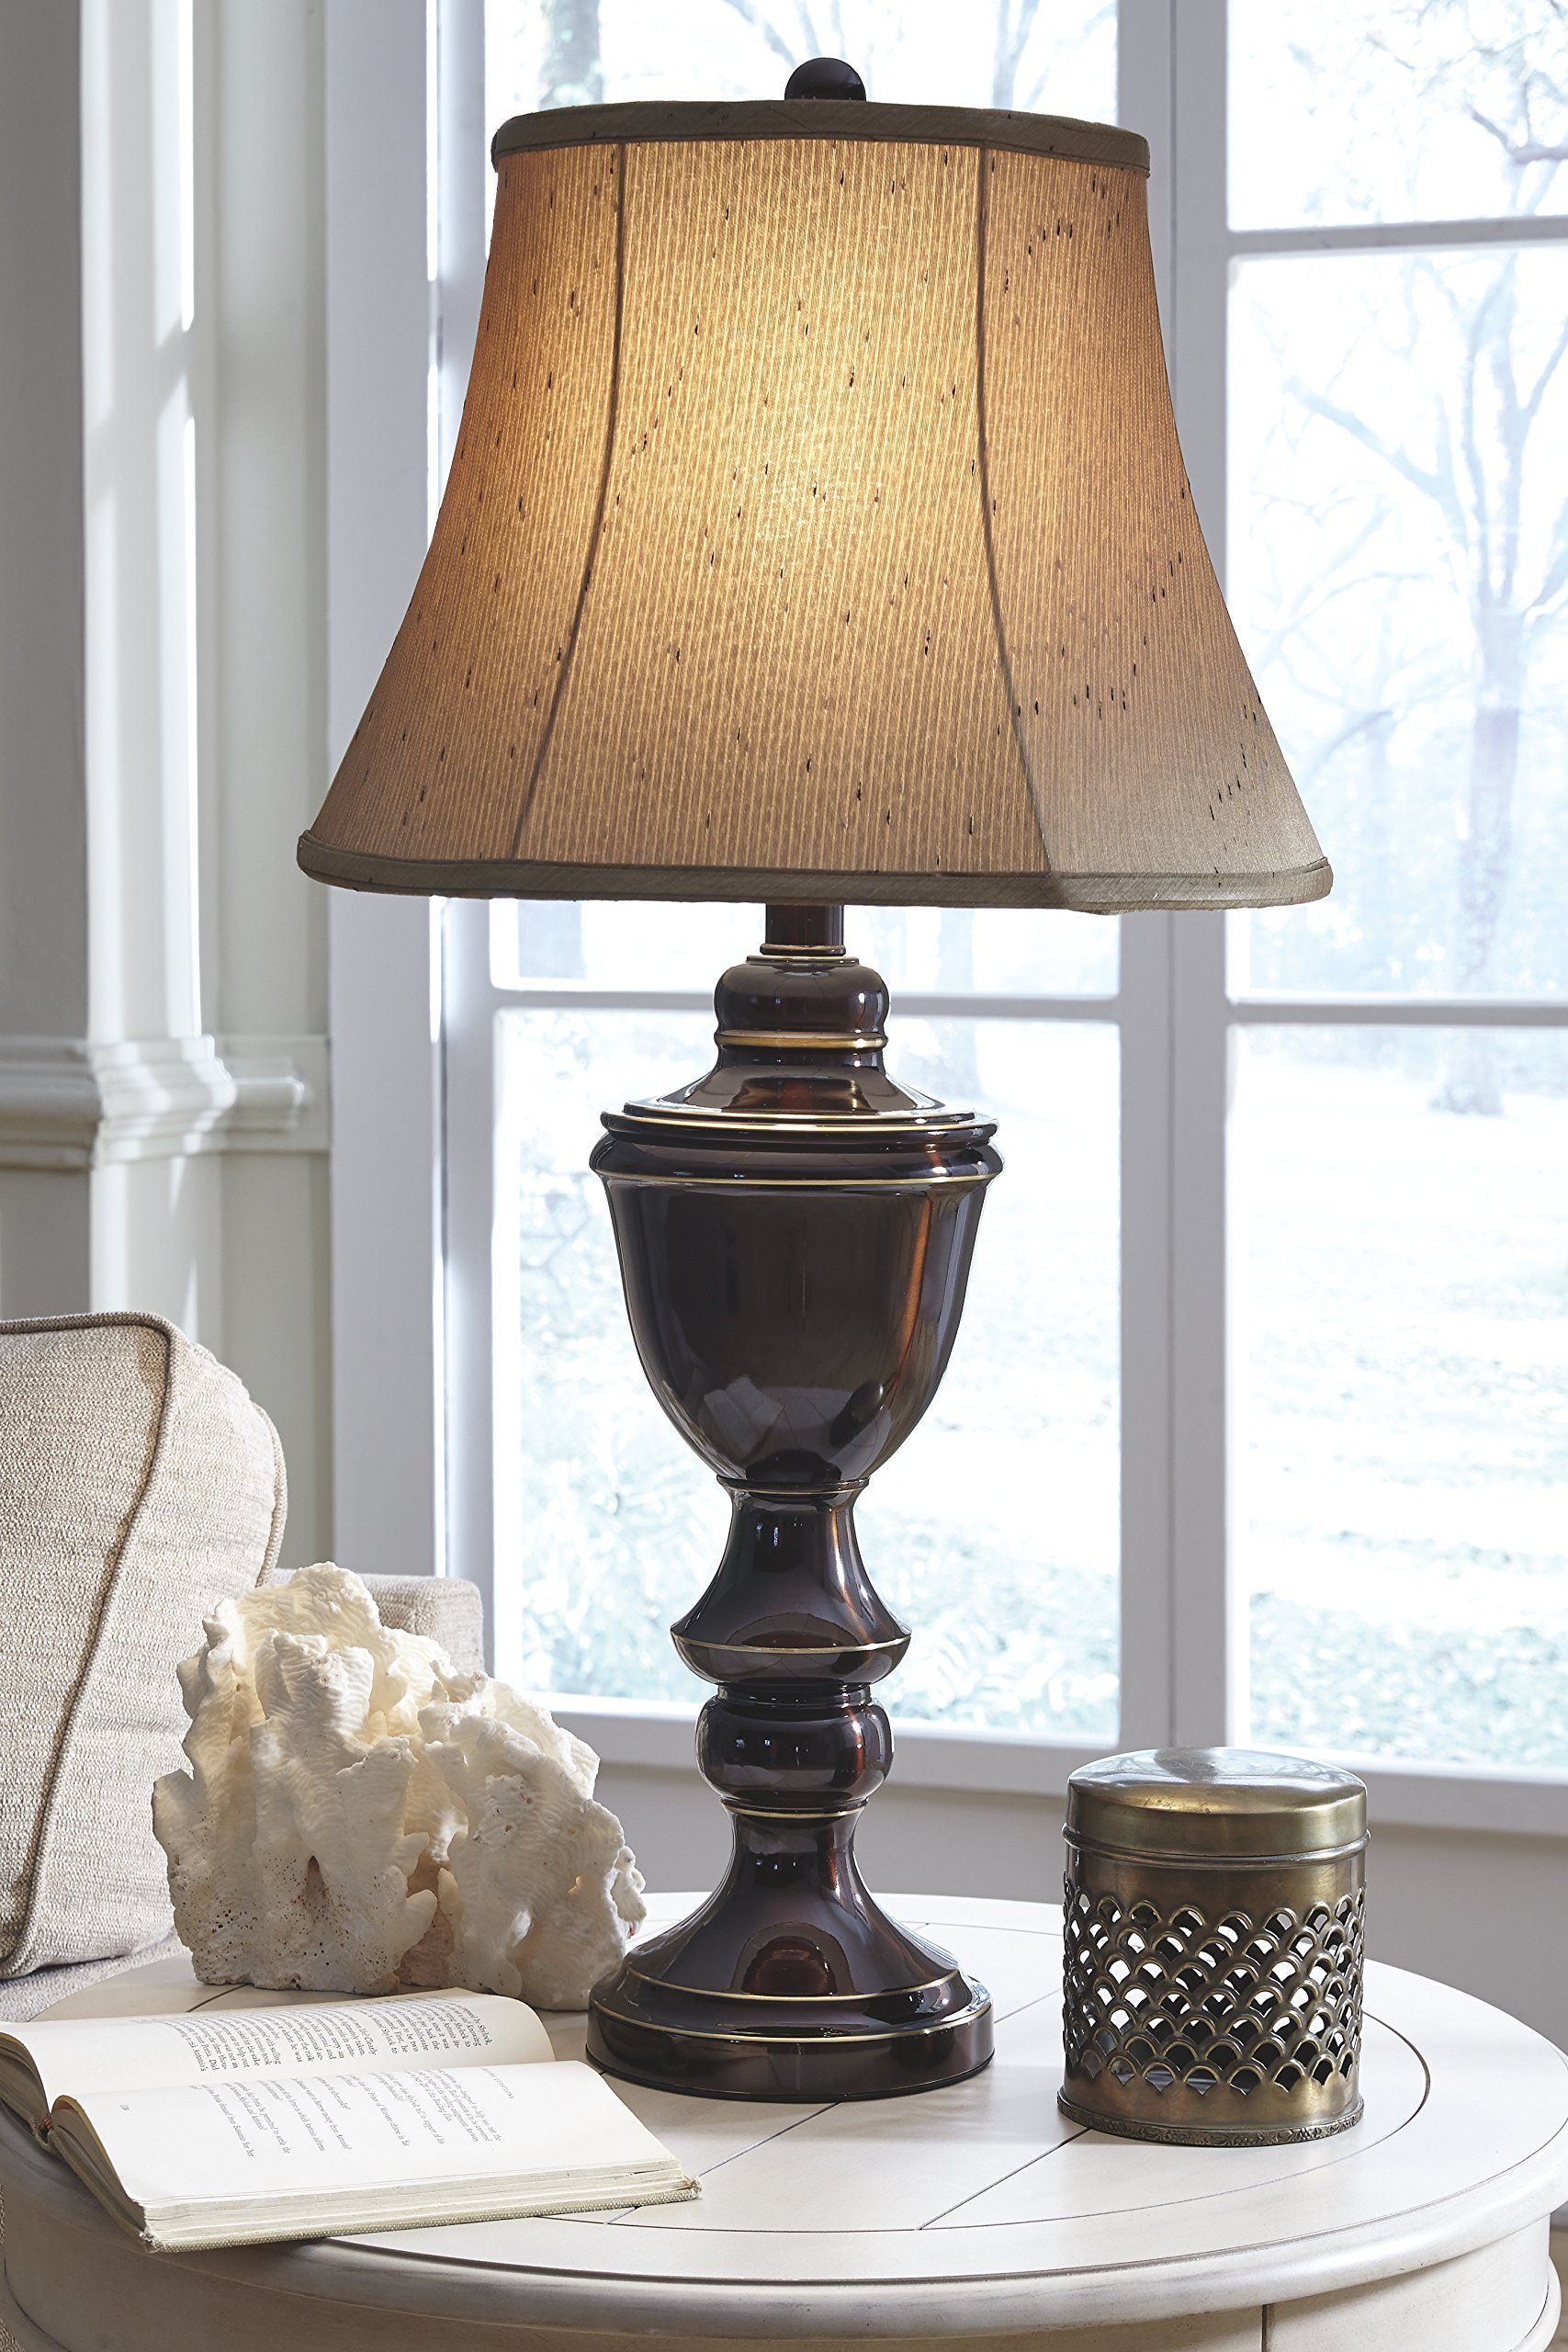 Ashley Furniture Signature Design Glyn Metal Table Lamp Elegant Bell Shades Set Of 2 Rubbed Bronze Finish Find Out Mo Metal Table Lamps Table Lamp Lamp